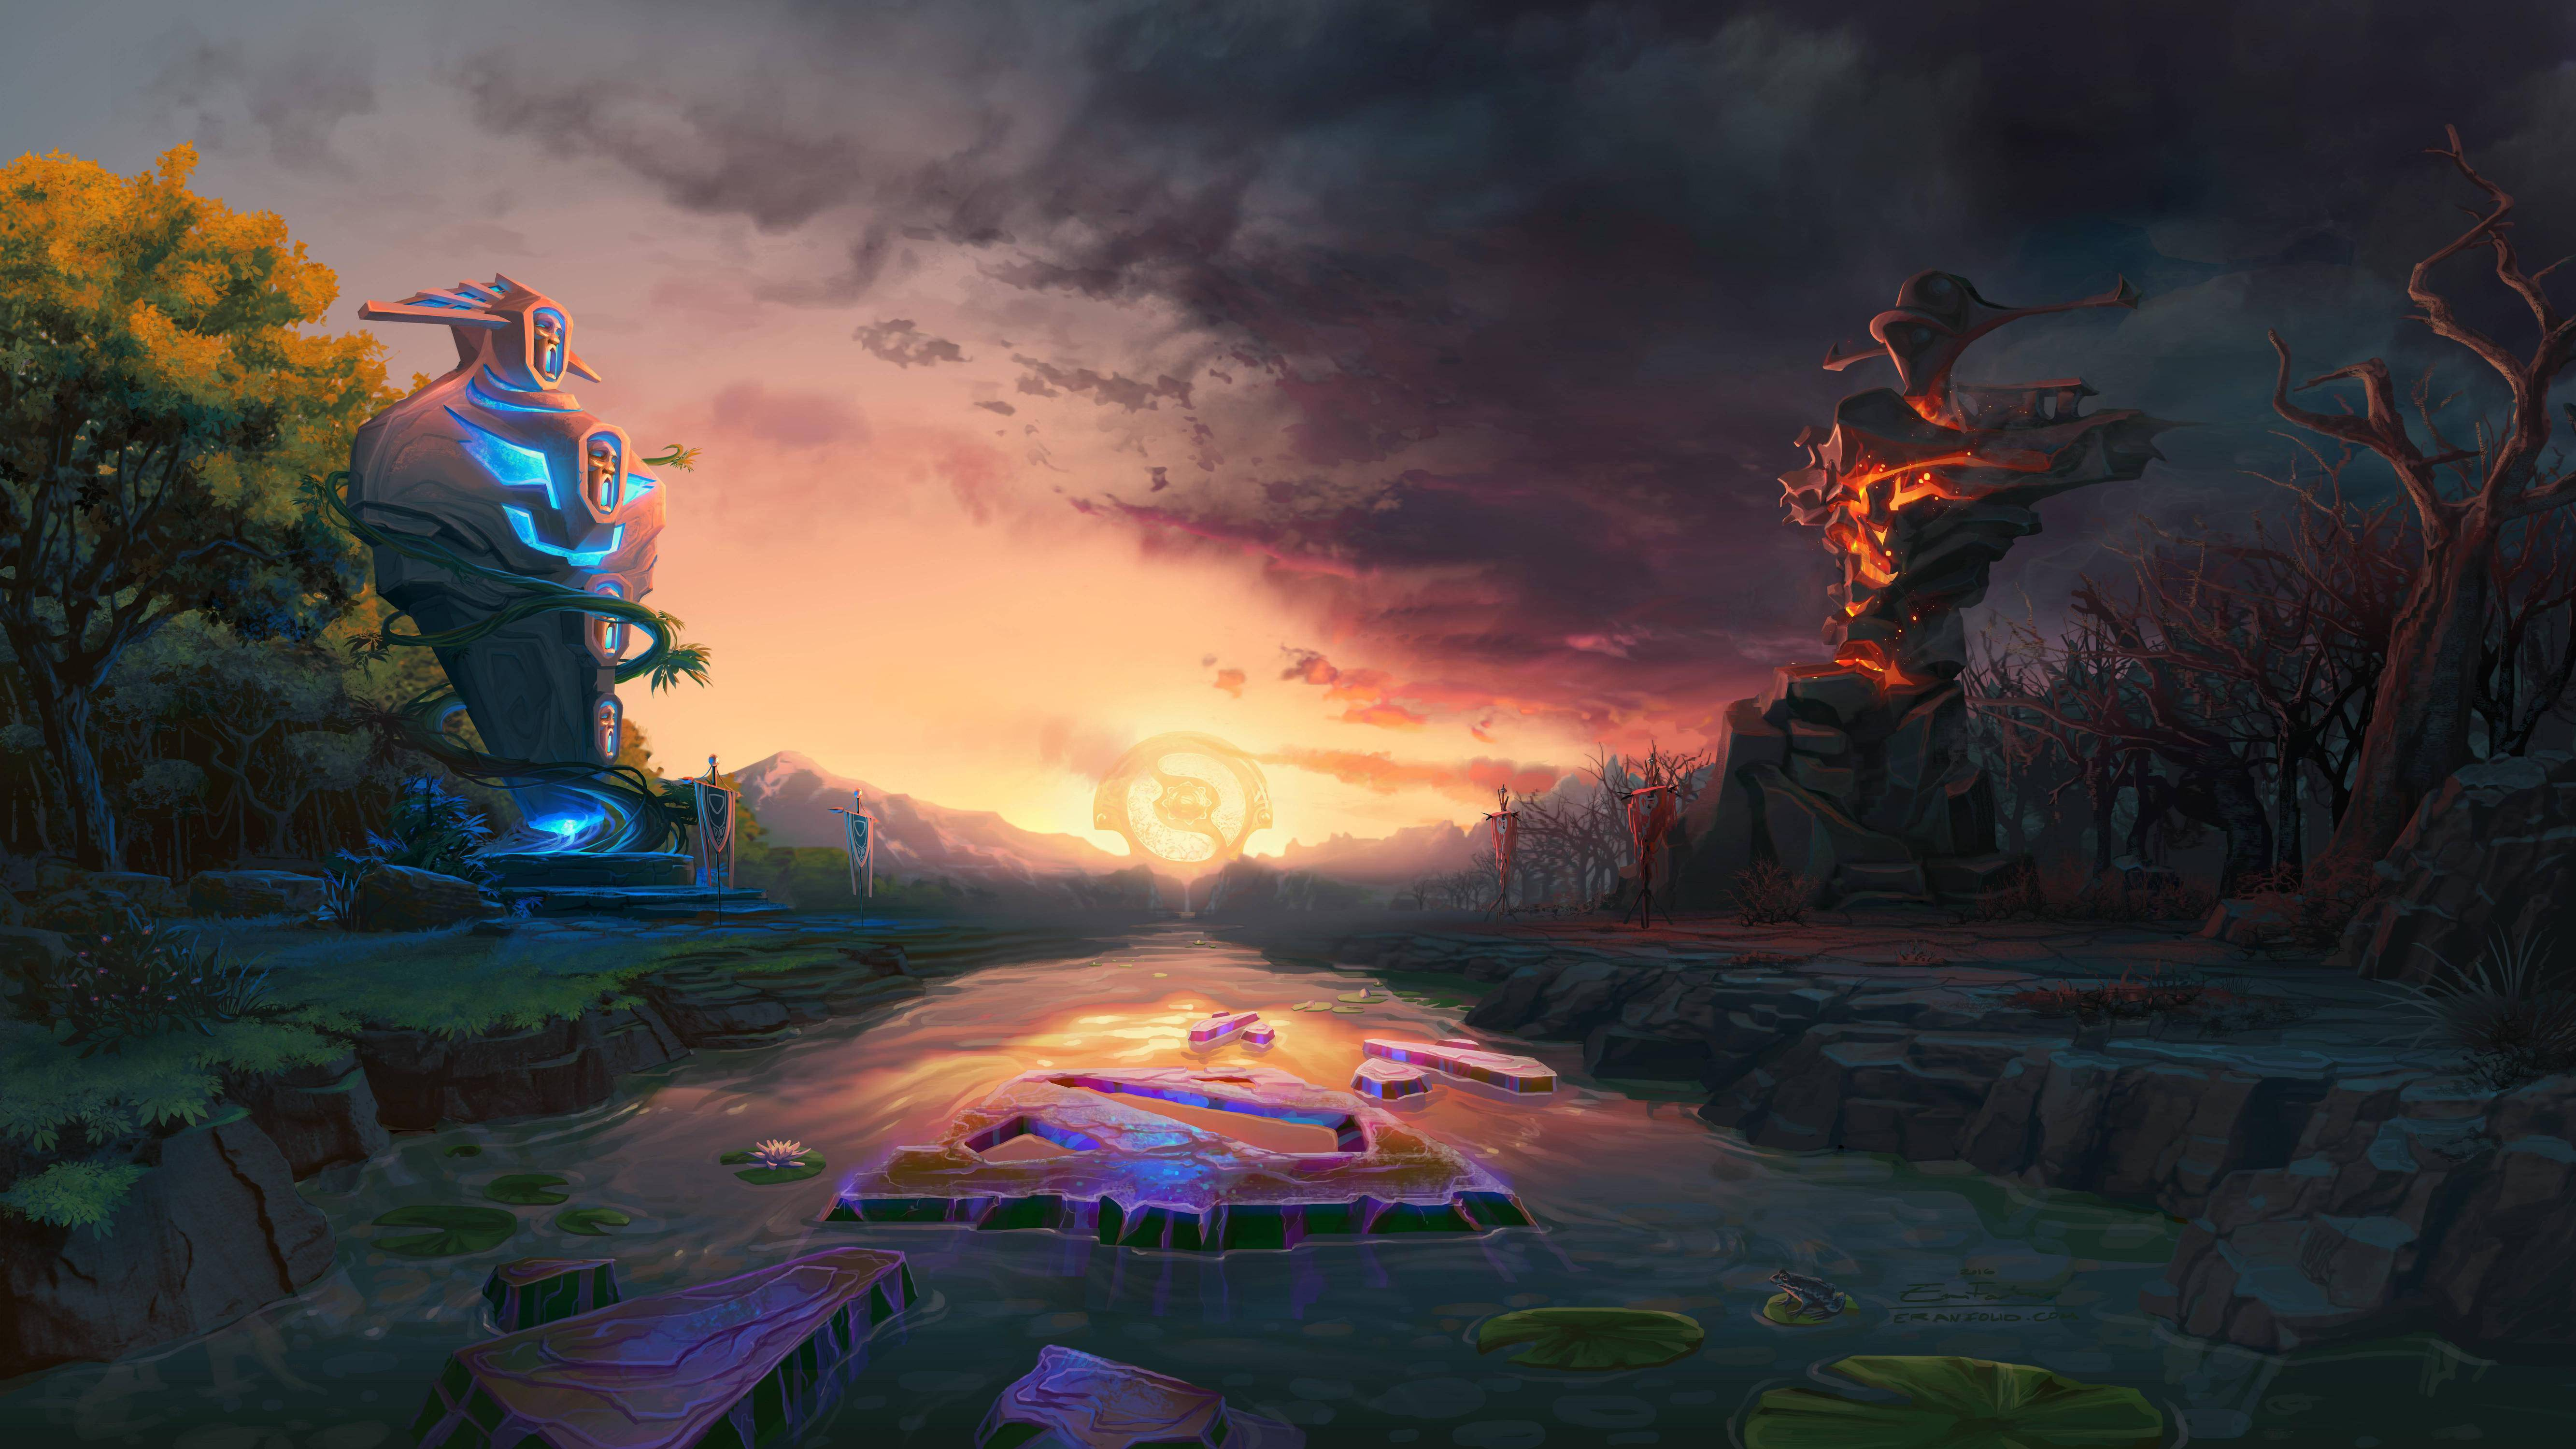 Dota 2 the calm before the horn hd games 4k wallpapers images backgrounds photos and pictures - Wallpaper hd dota ...